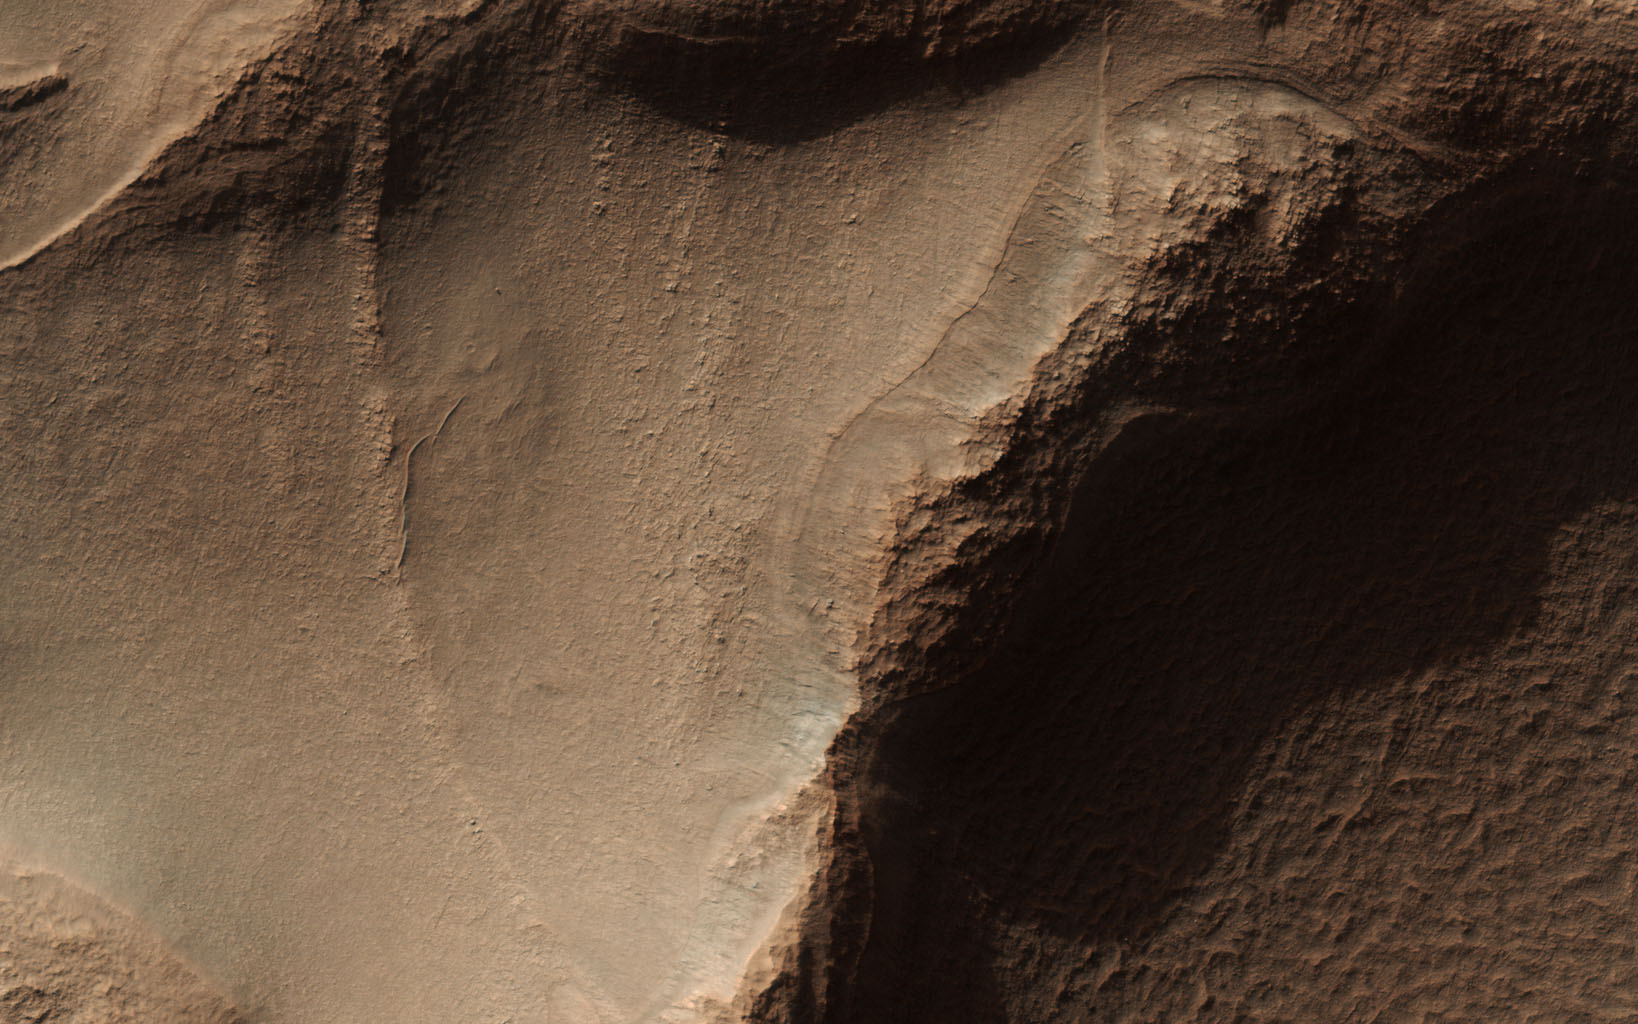 This image from NASA's Mars Reconnaissance Orbiter (MRO) targets a portion of a group of honeycomb-textured landforms in northwestern Hellas Planitia, part of one of the largest and most ancient impact basins on Mars.